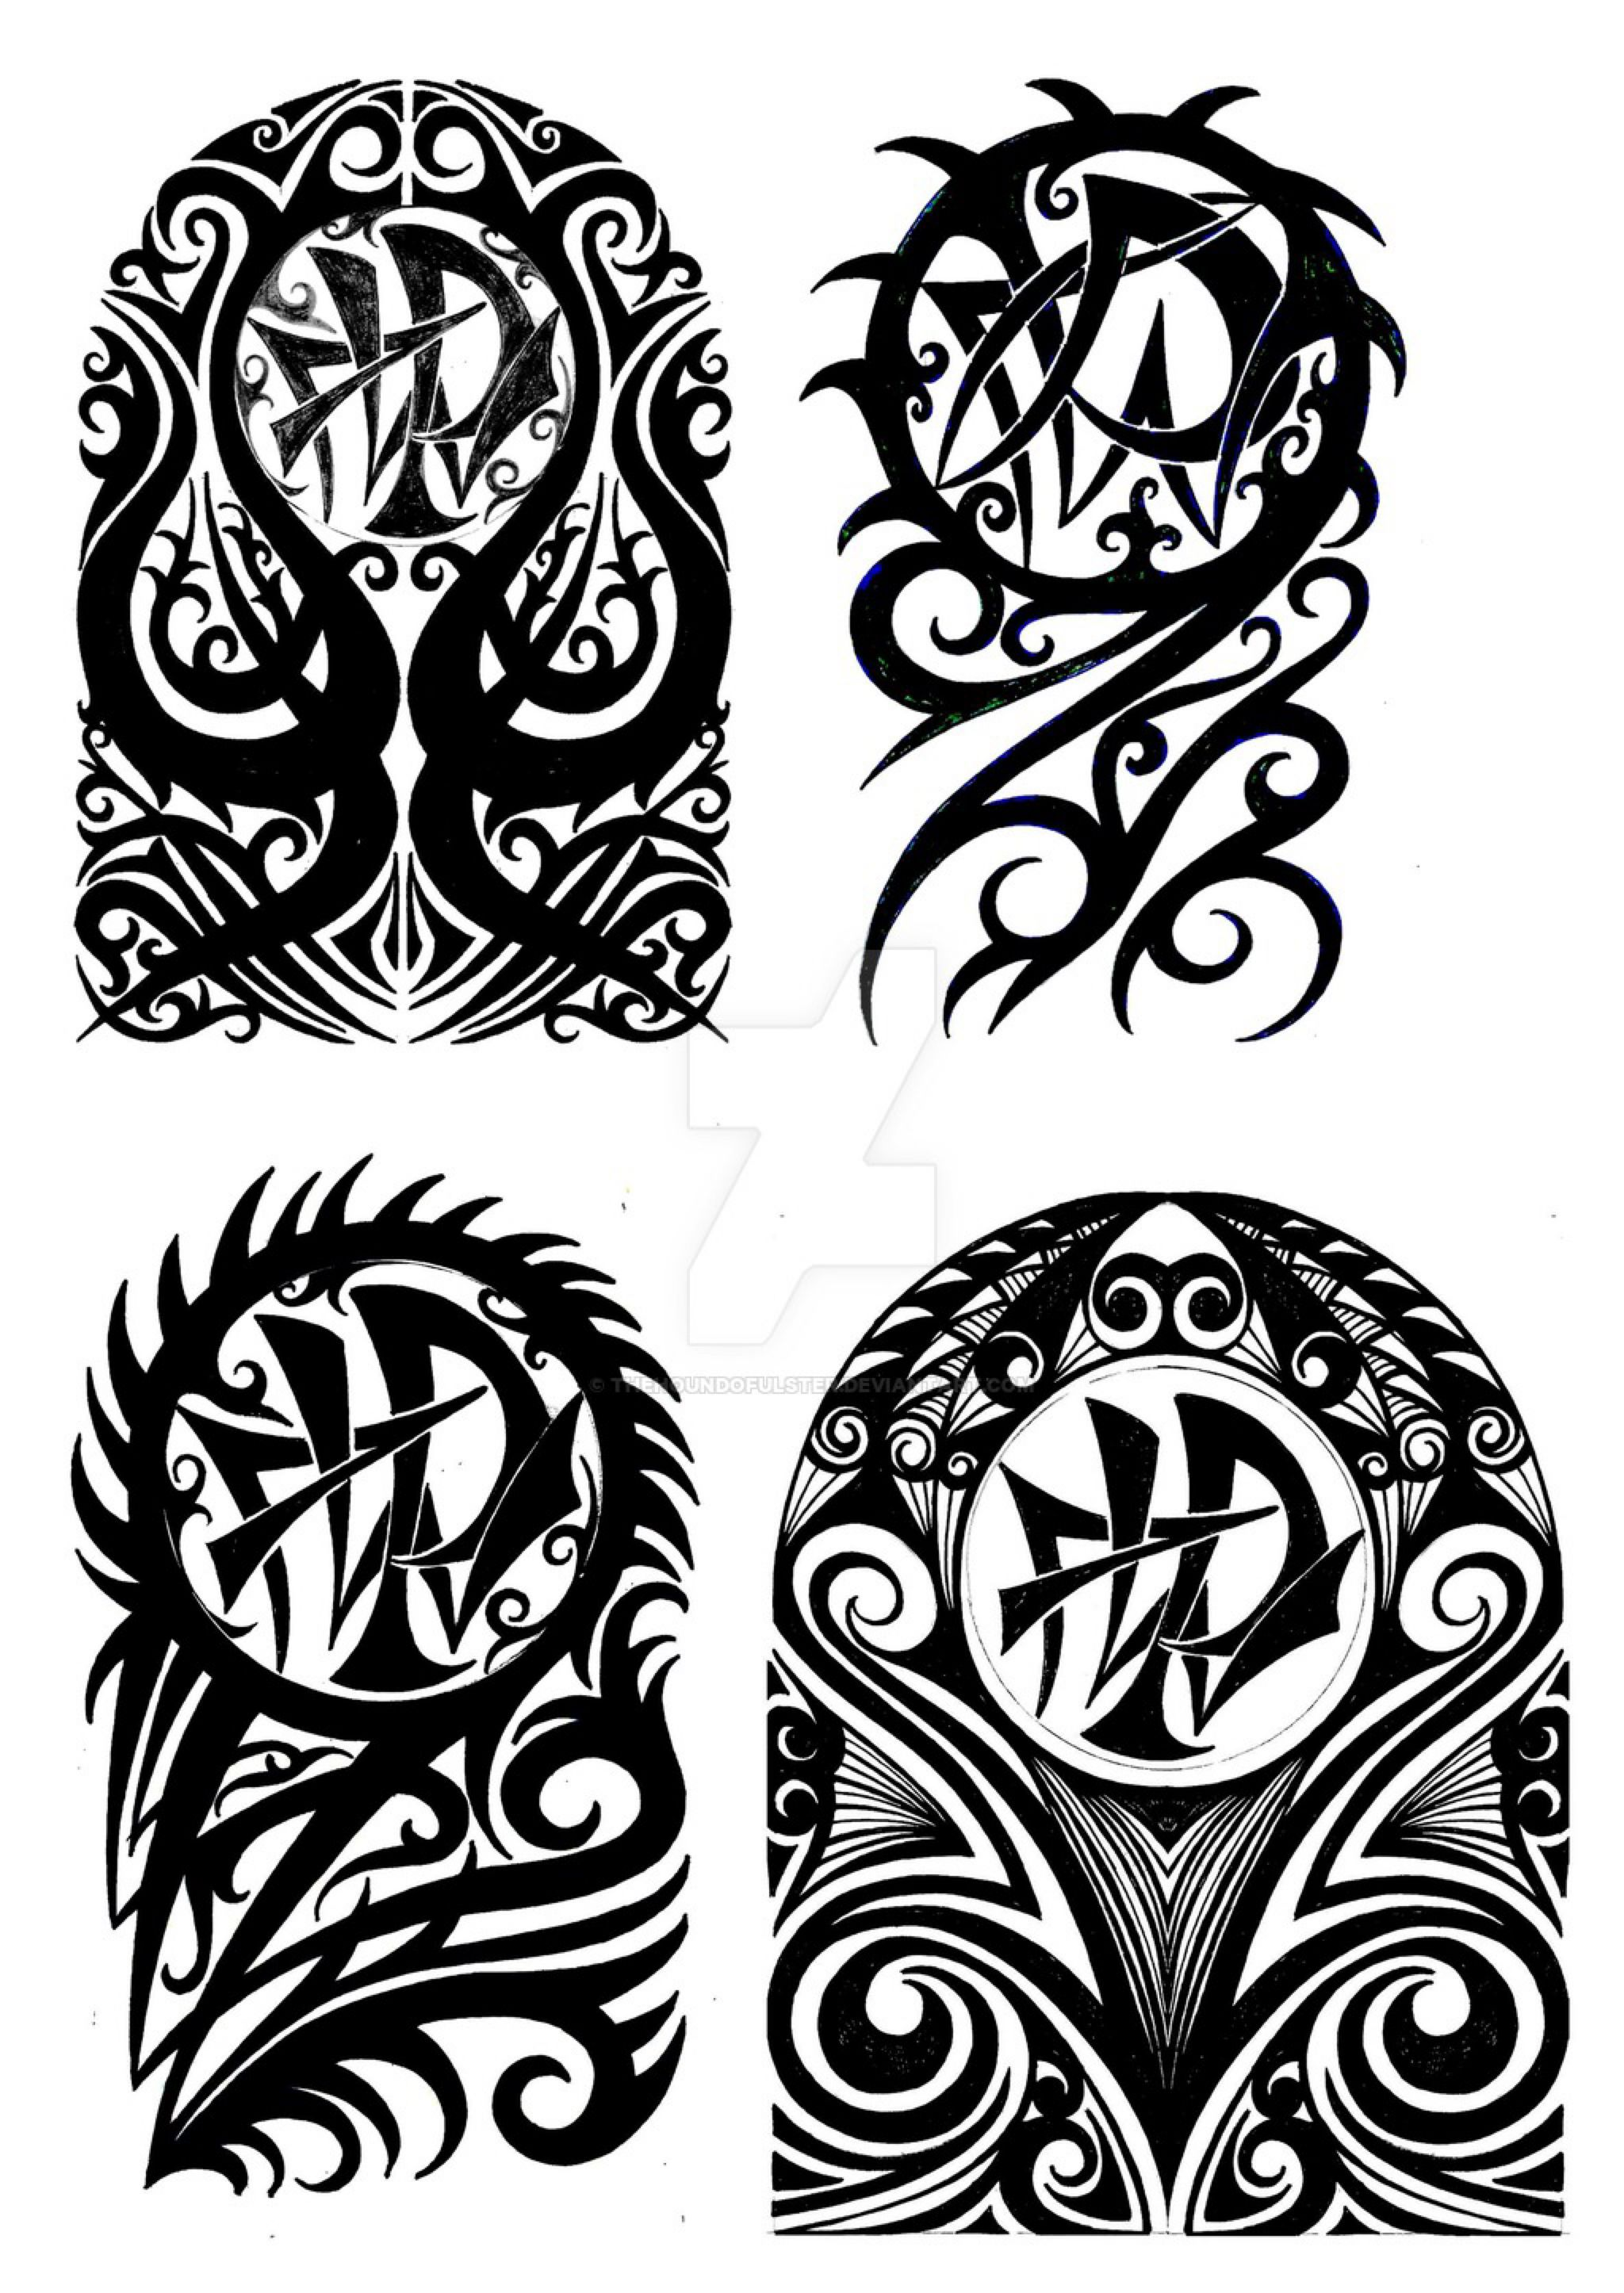 6473ebb26 Tribal halfsleeve tattoo designs by thehoundofulster on @DeviantArt ...